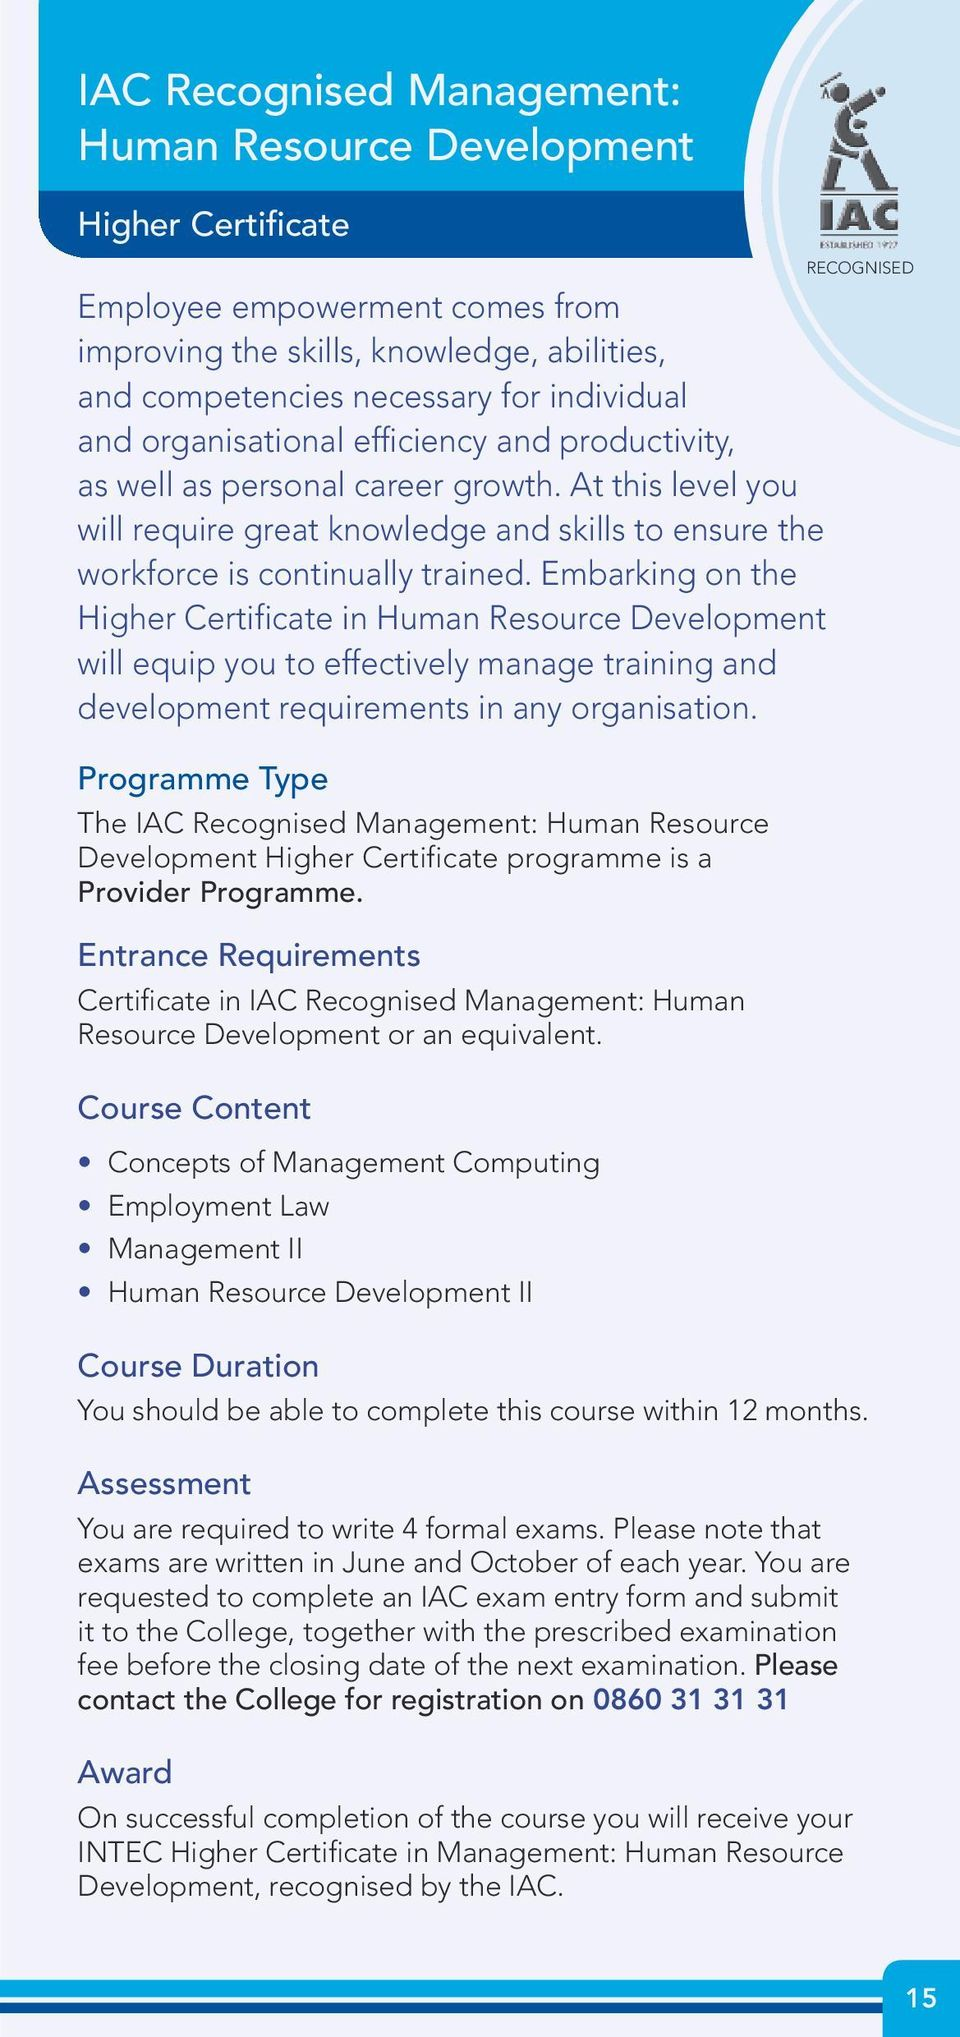 Embarking on the Higher Certificate in Human Resource Development will equip you to effectively manage training and development requirements in any organisation.